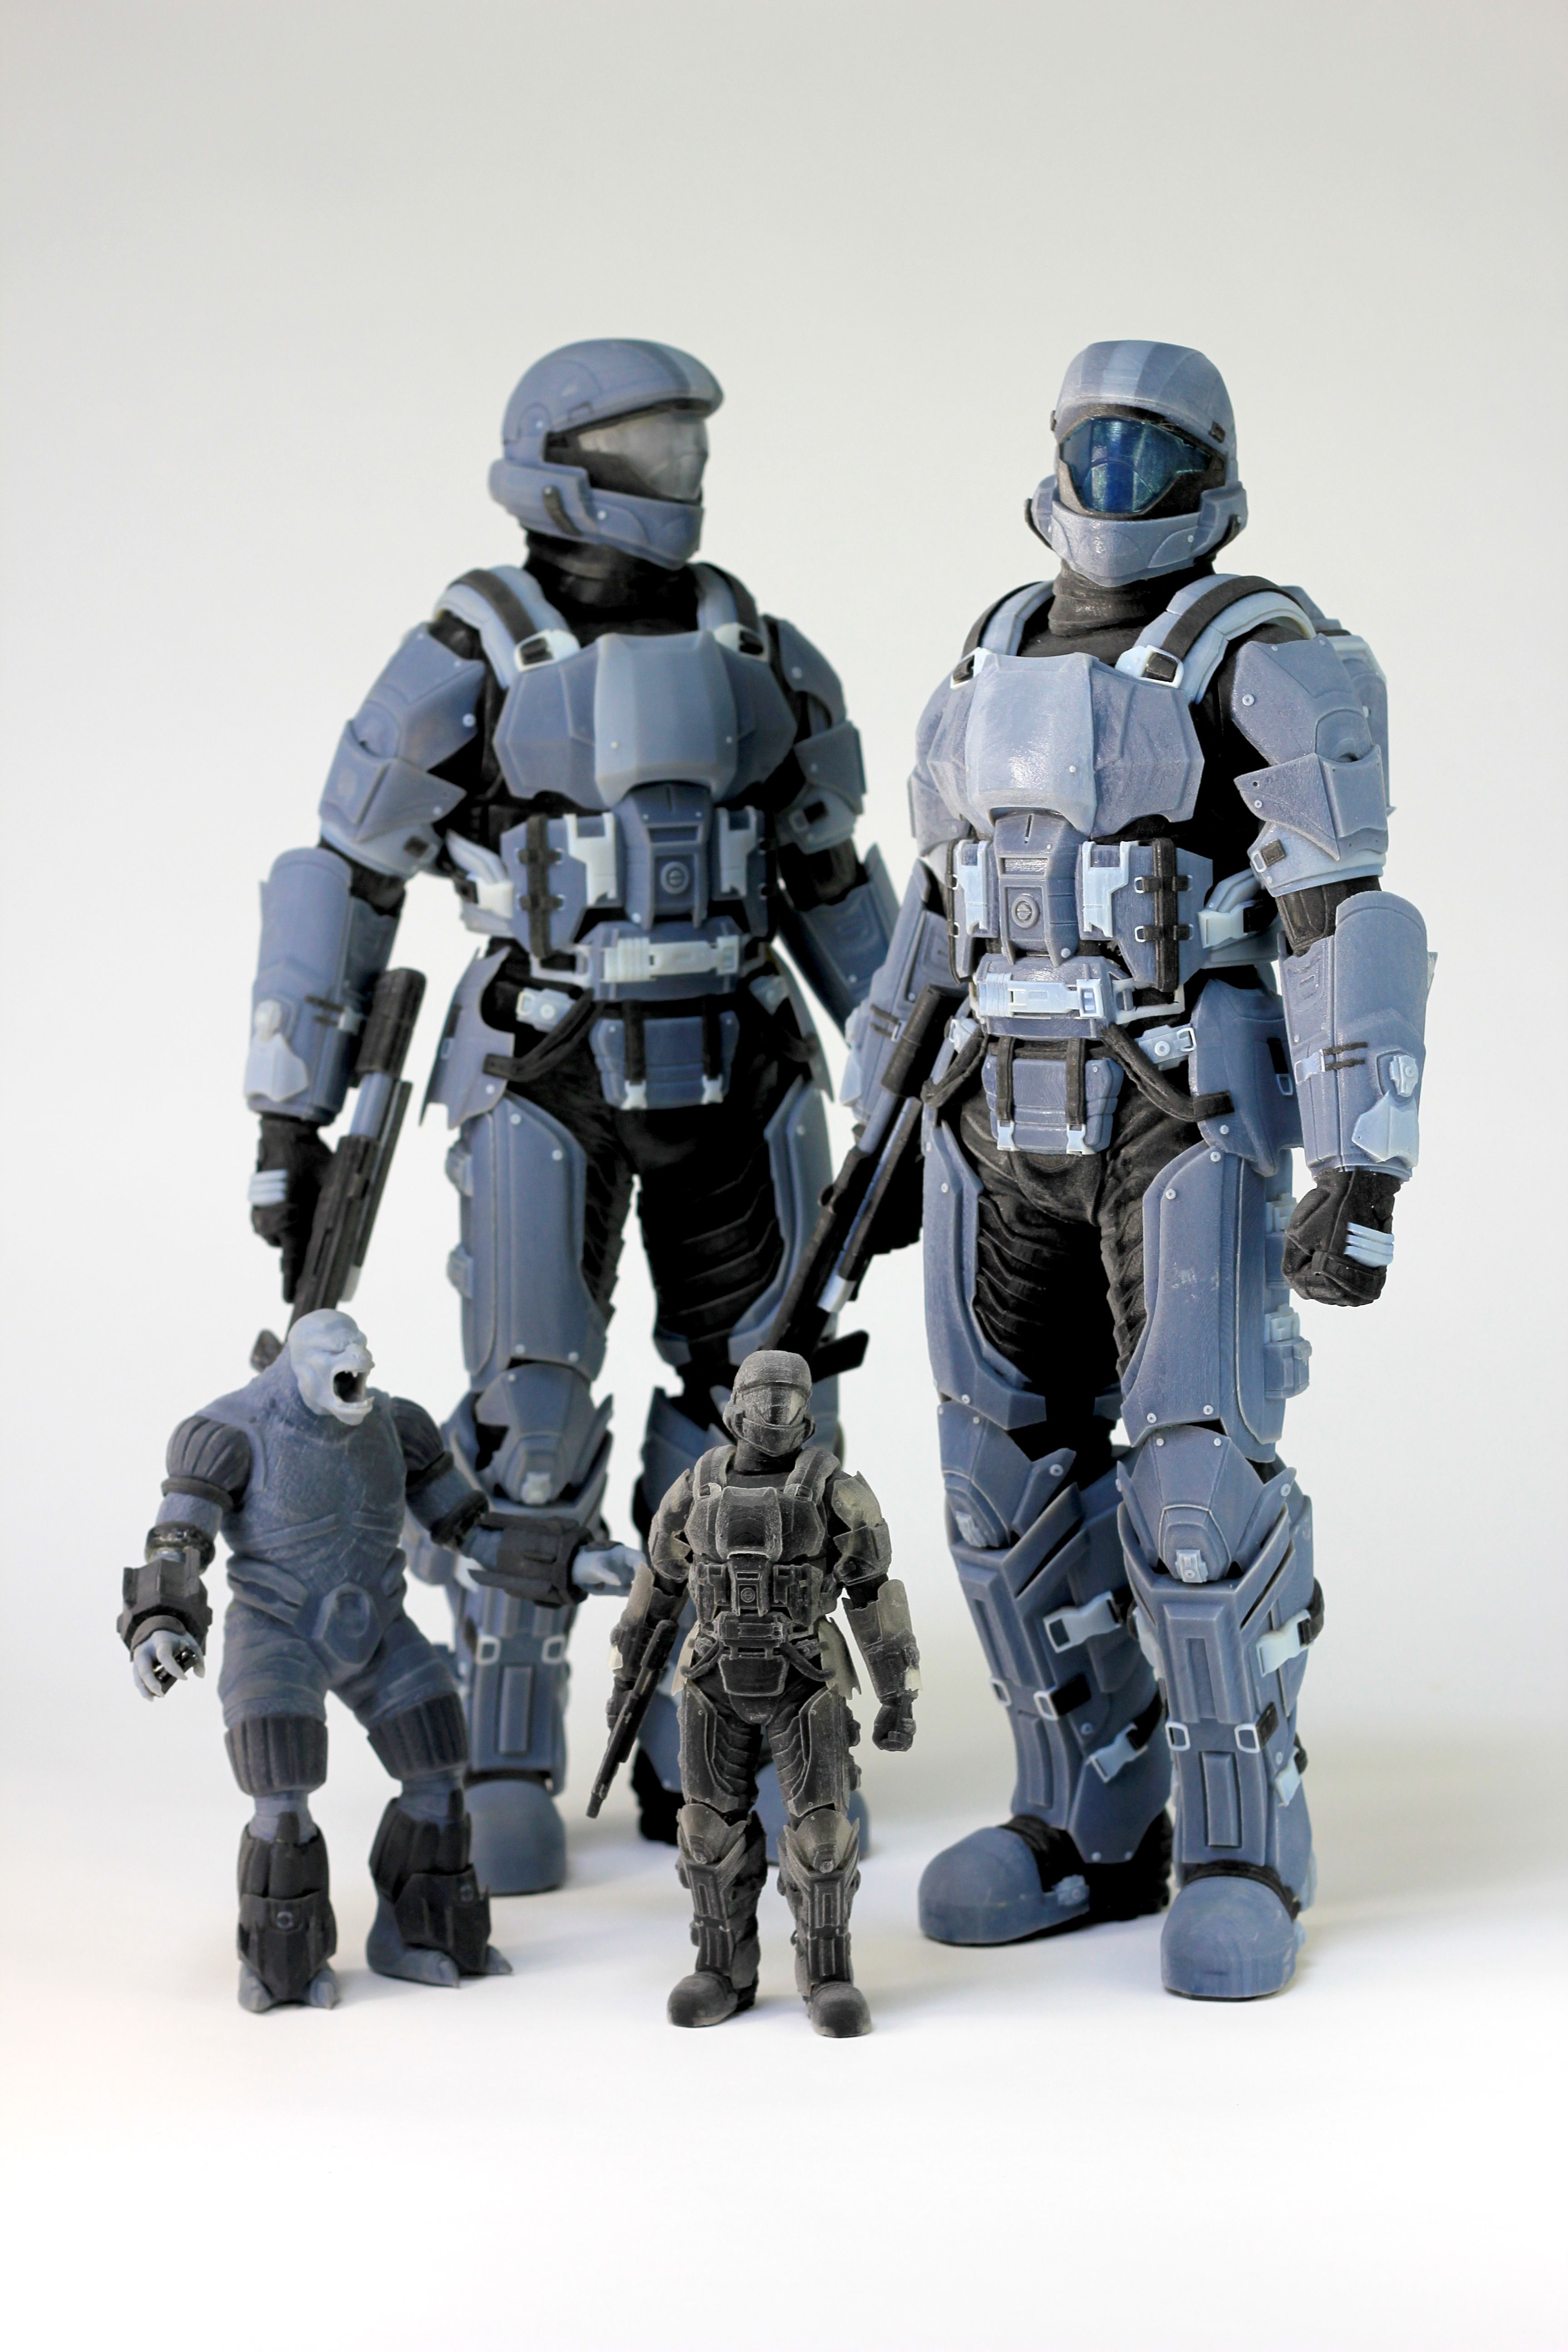 3D printed action figures 3dPrintedToys 3D Printed Toys